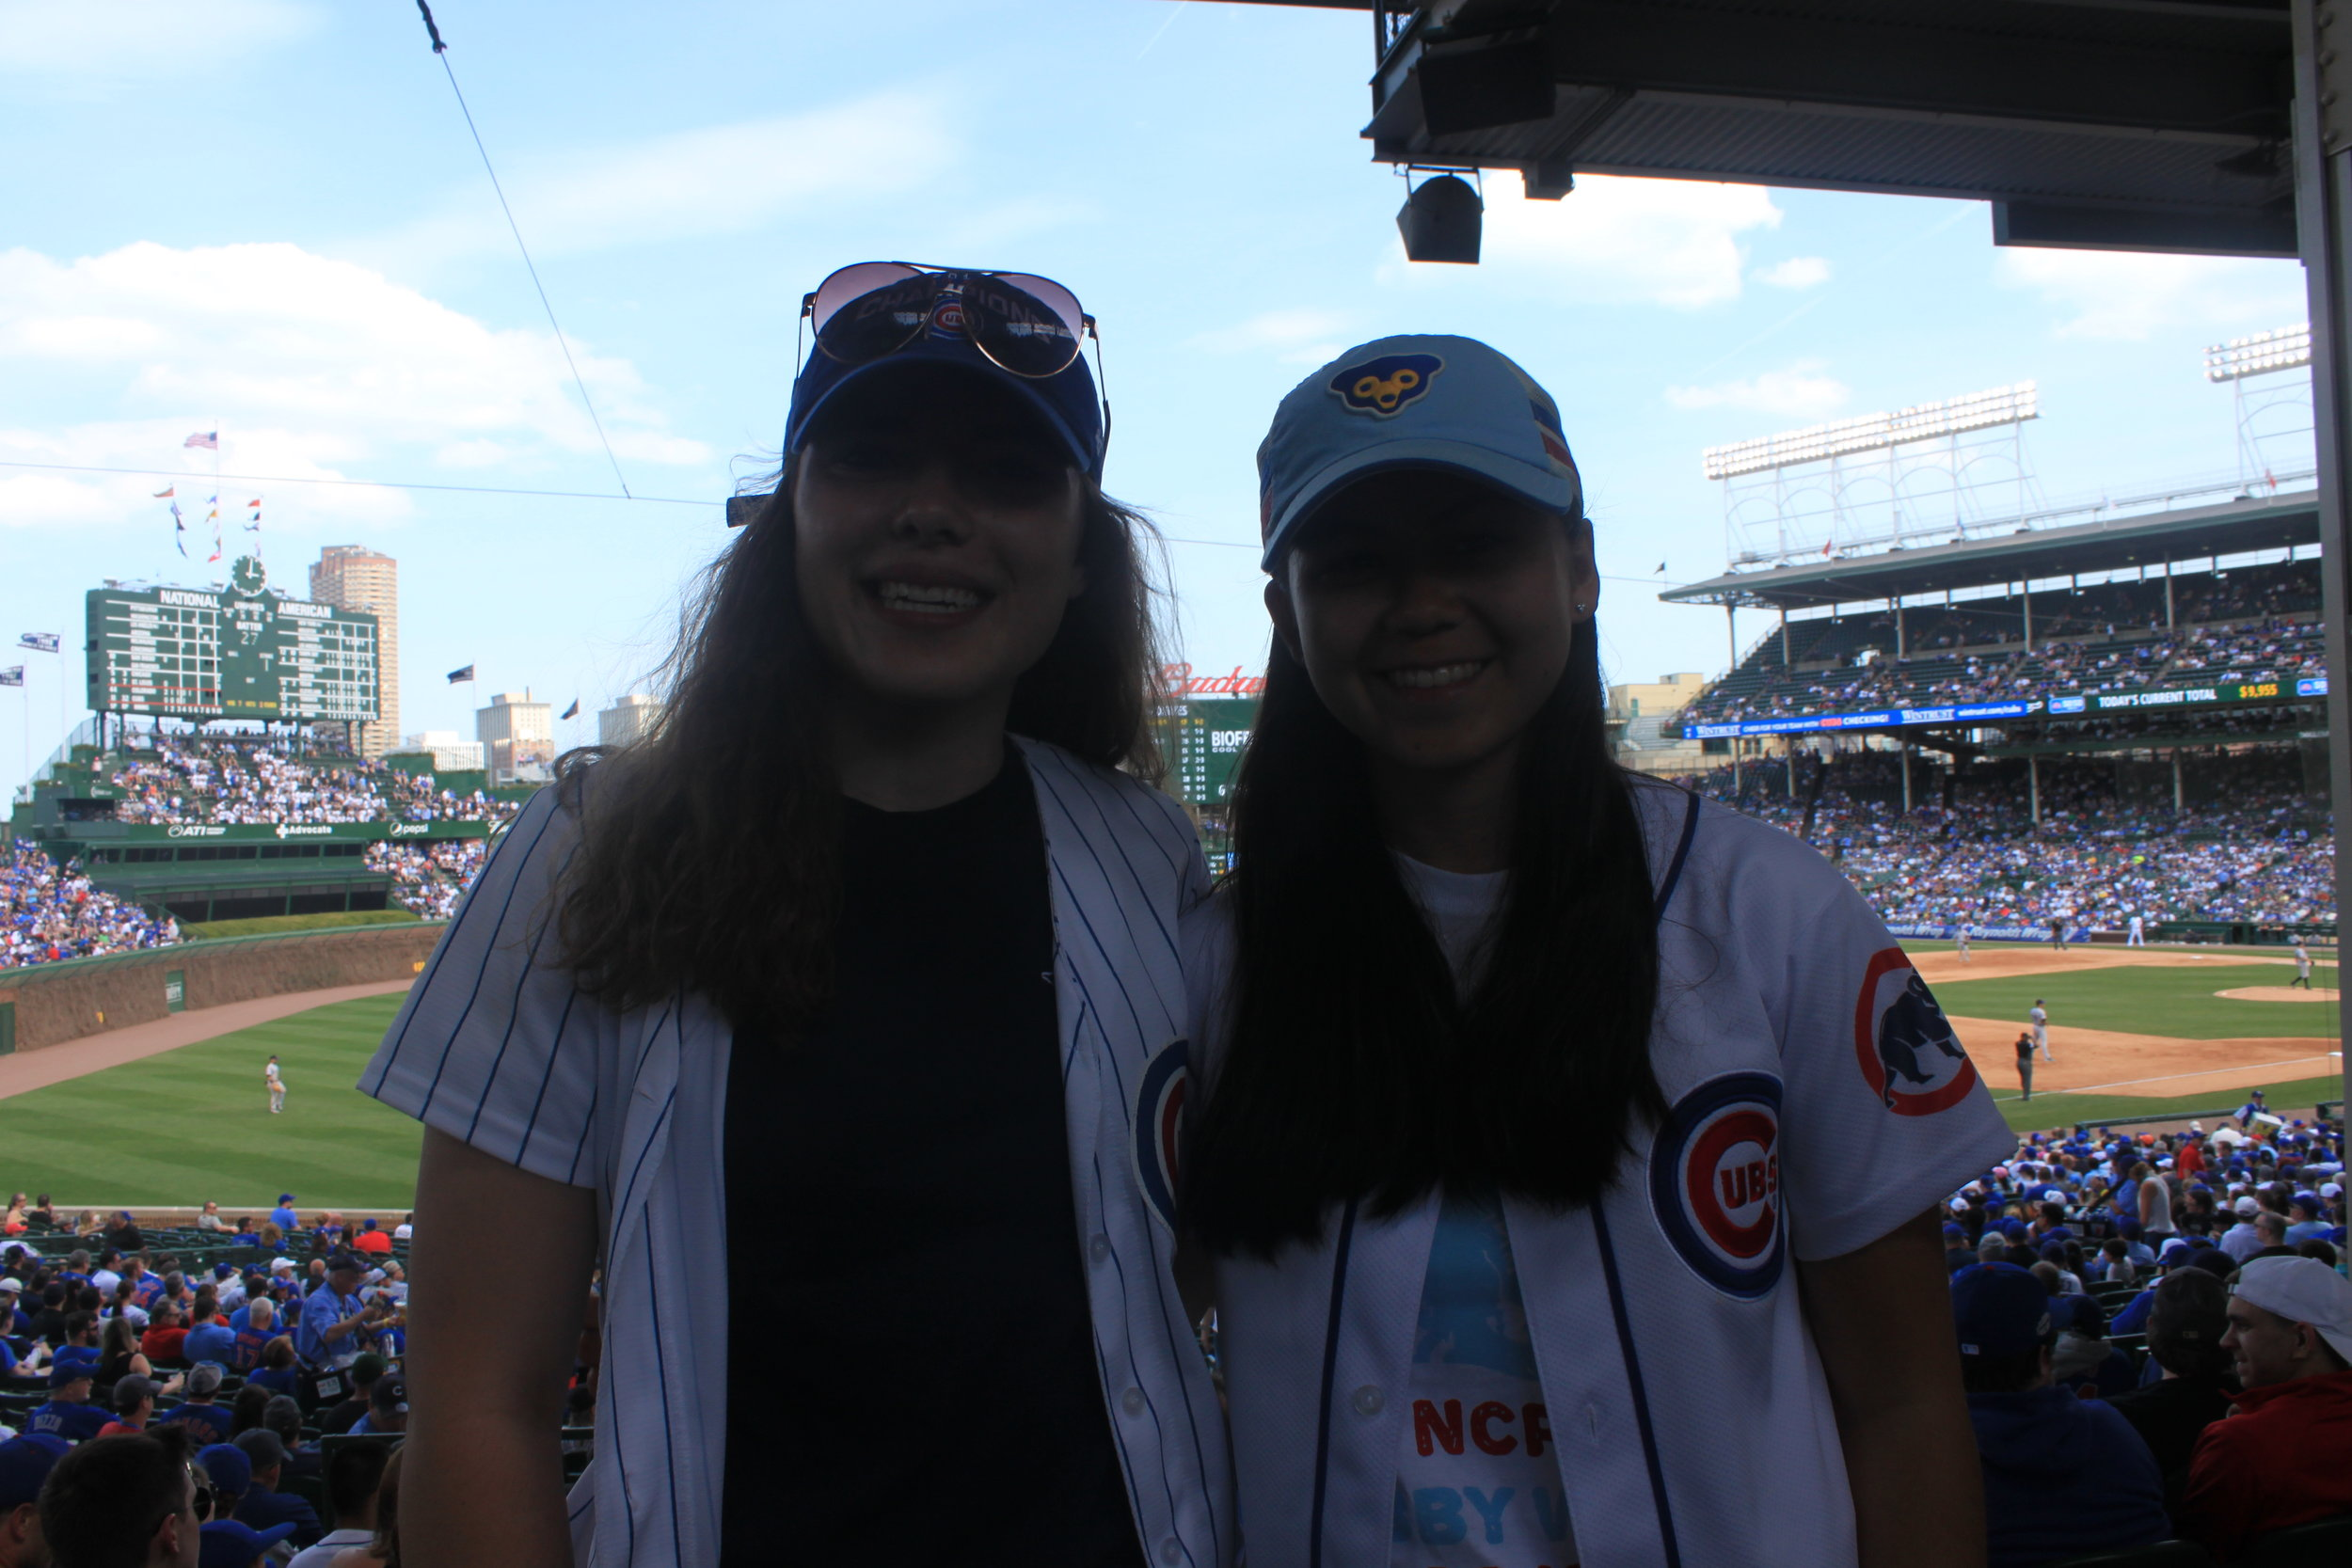 Madeleine Schoeff and Audrey McManus smile as they cheer on the Cubs.